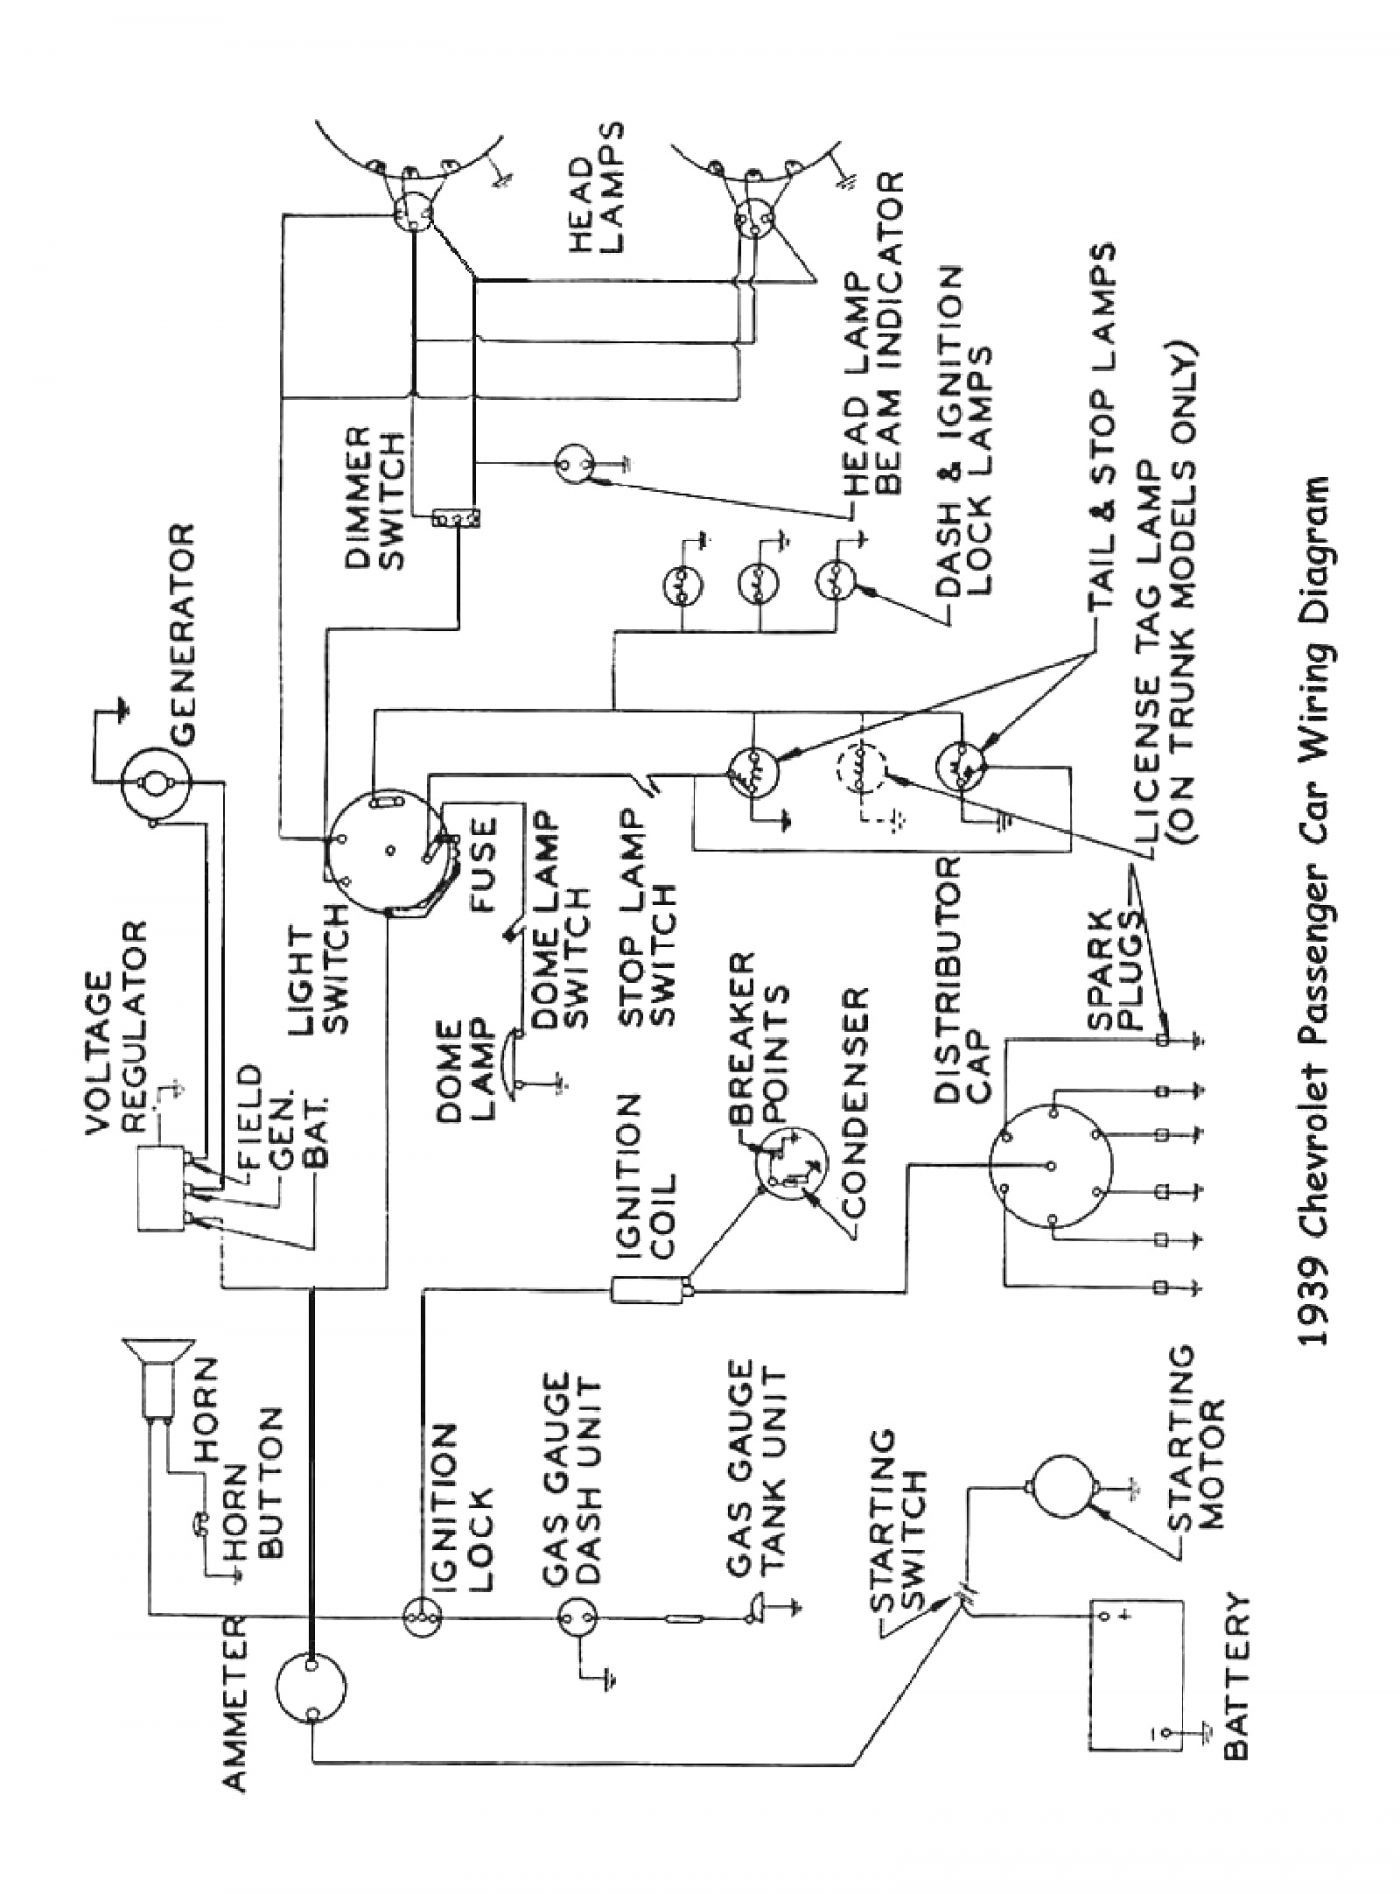 Western Plow Controller Wiring Diagram For Switch | Wiring Liry on